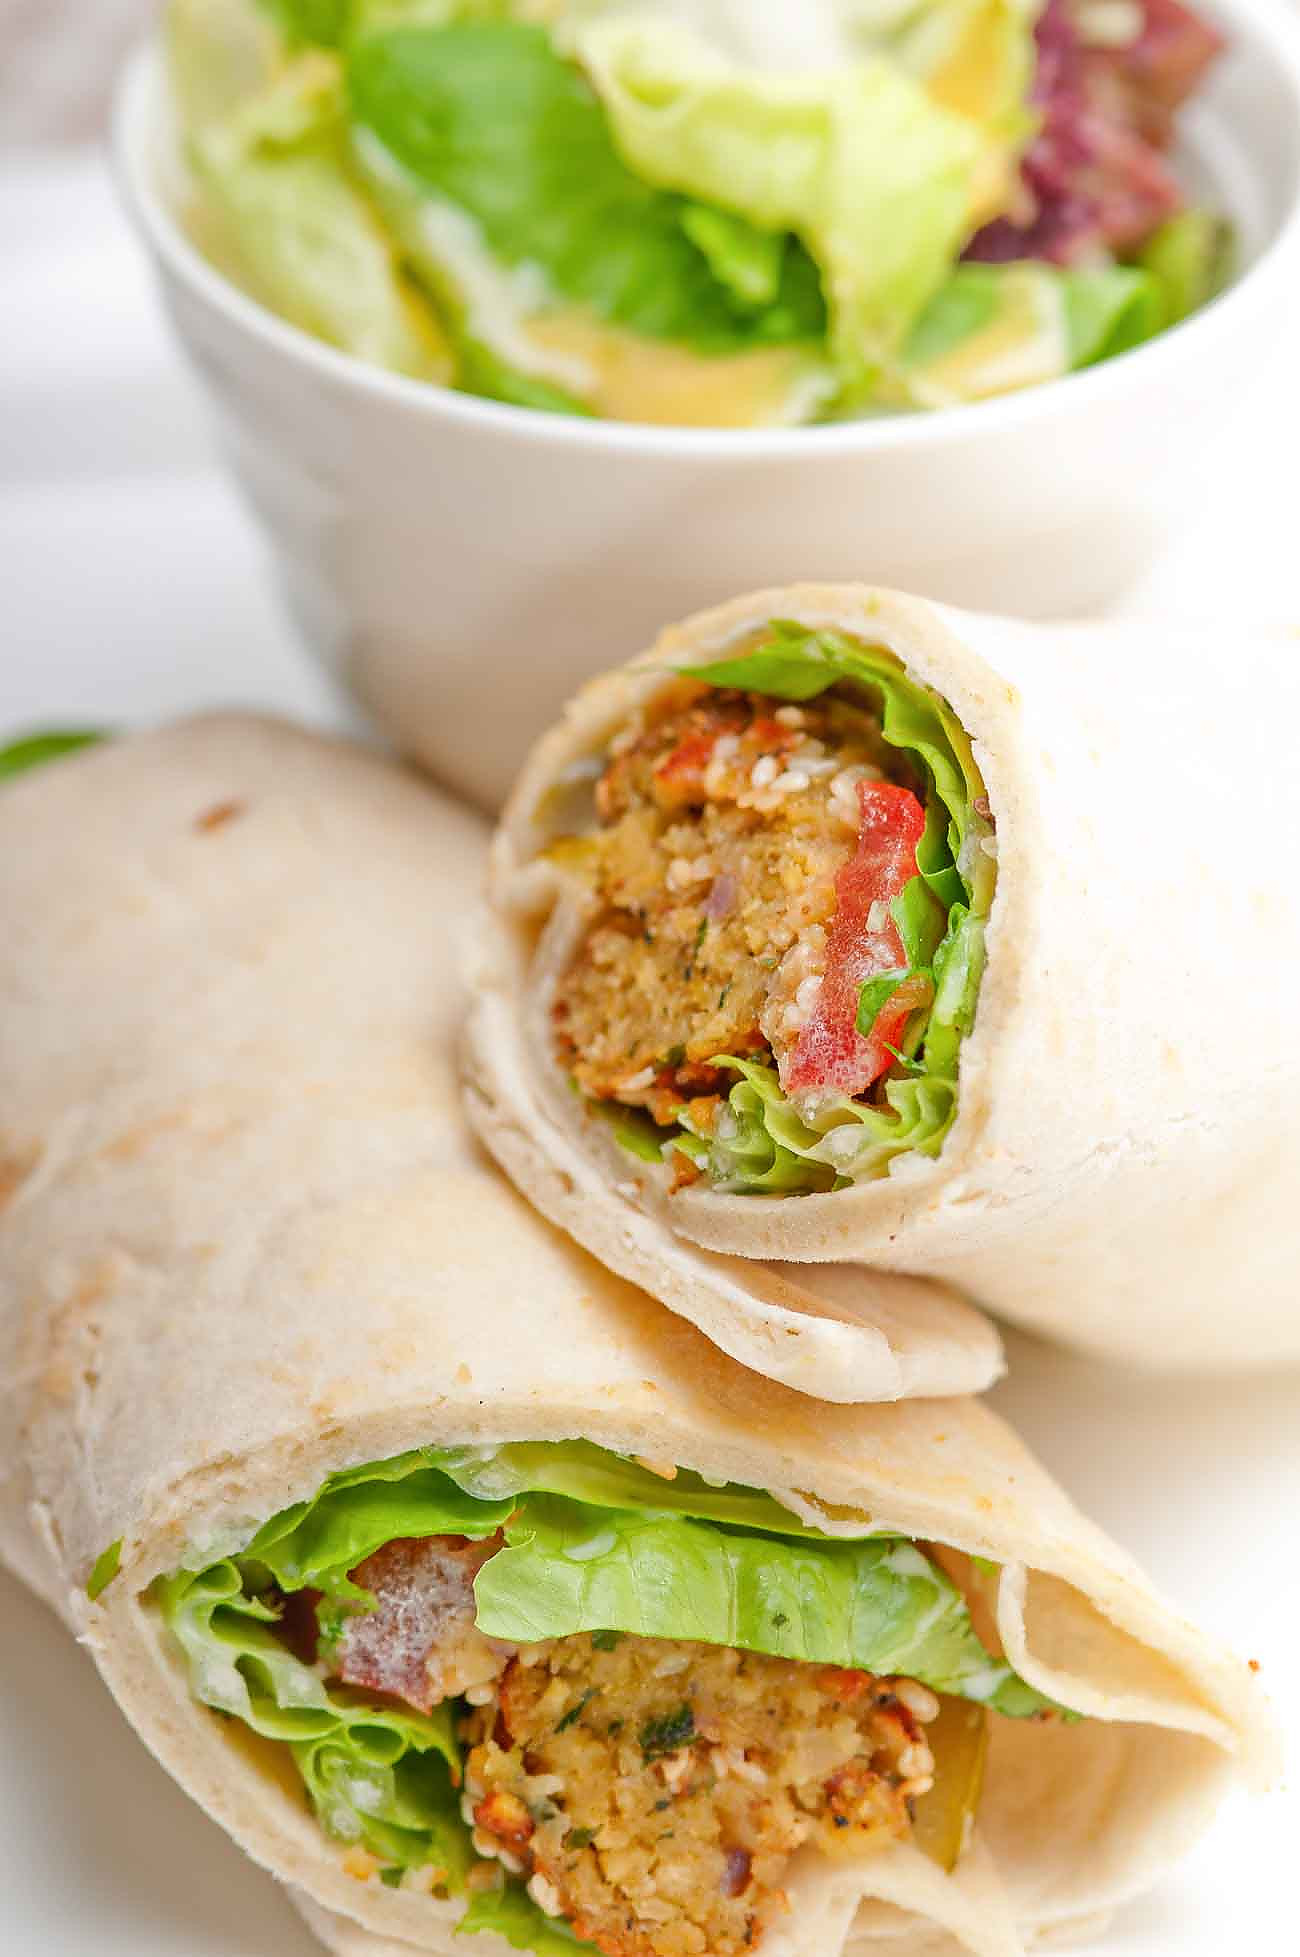 Middle Eastern Falafel & Hummus Wrap Recipe